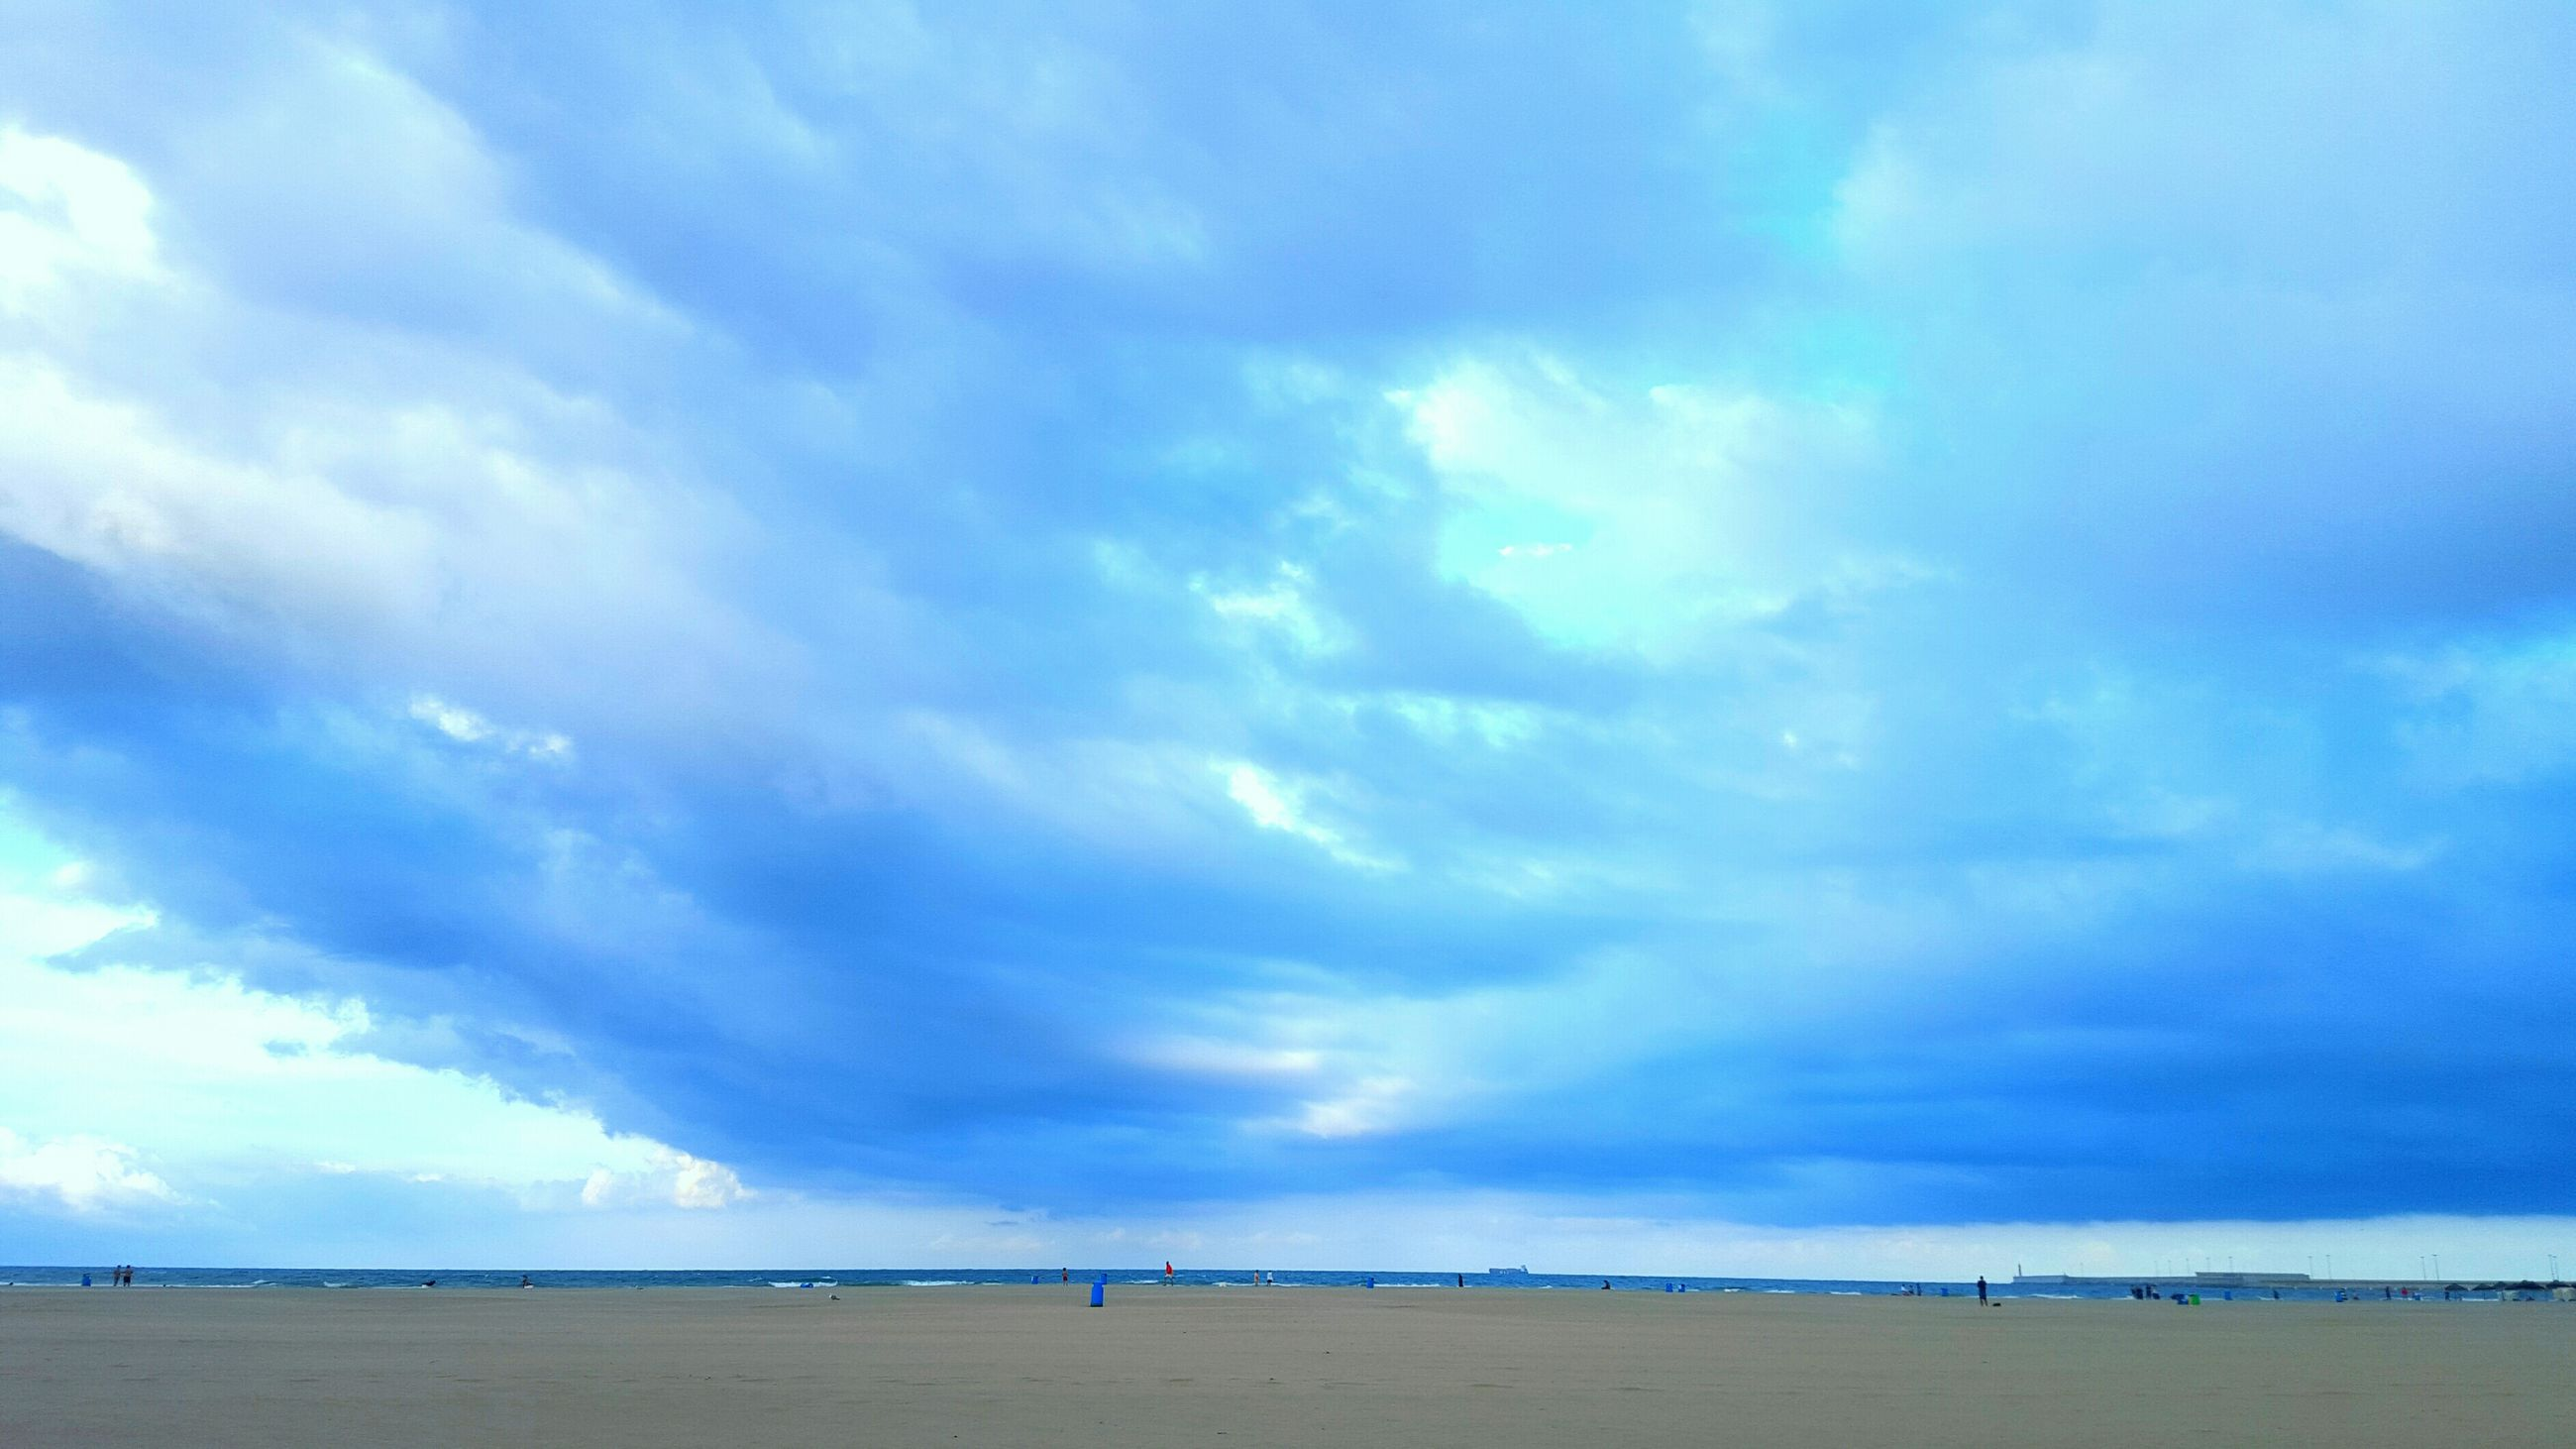 sea, beach, sky, horizon over water, water, shore, scenics, cloud - sky, tranquility, sand, tranquil scene, beauty in nature, blue, cloud, nature, cloudy, idyllic, incidental people, vacations, outdoors